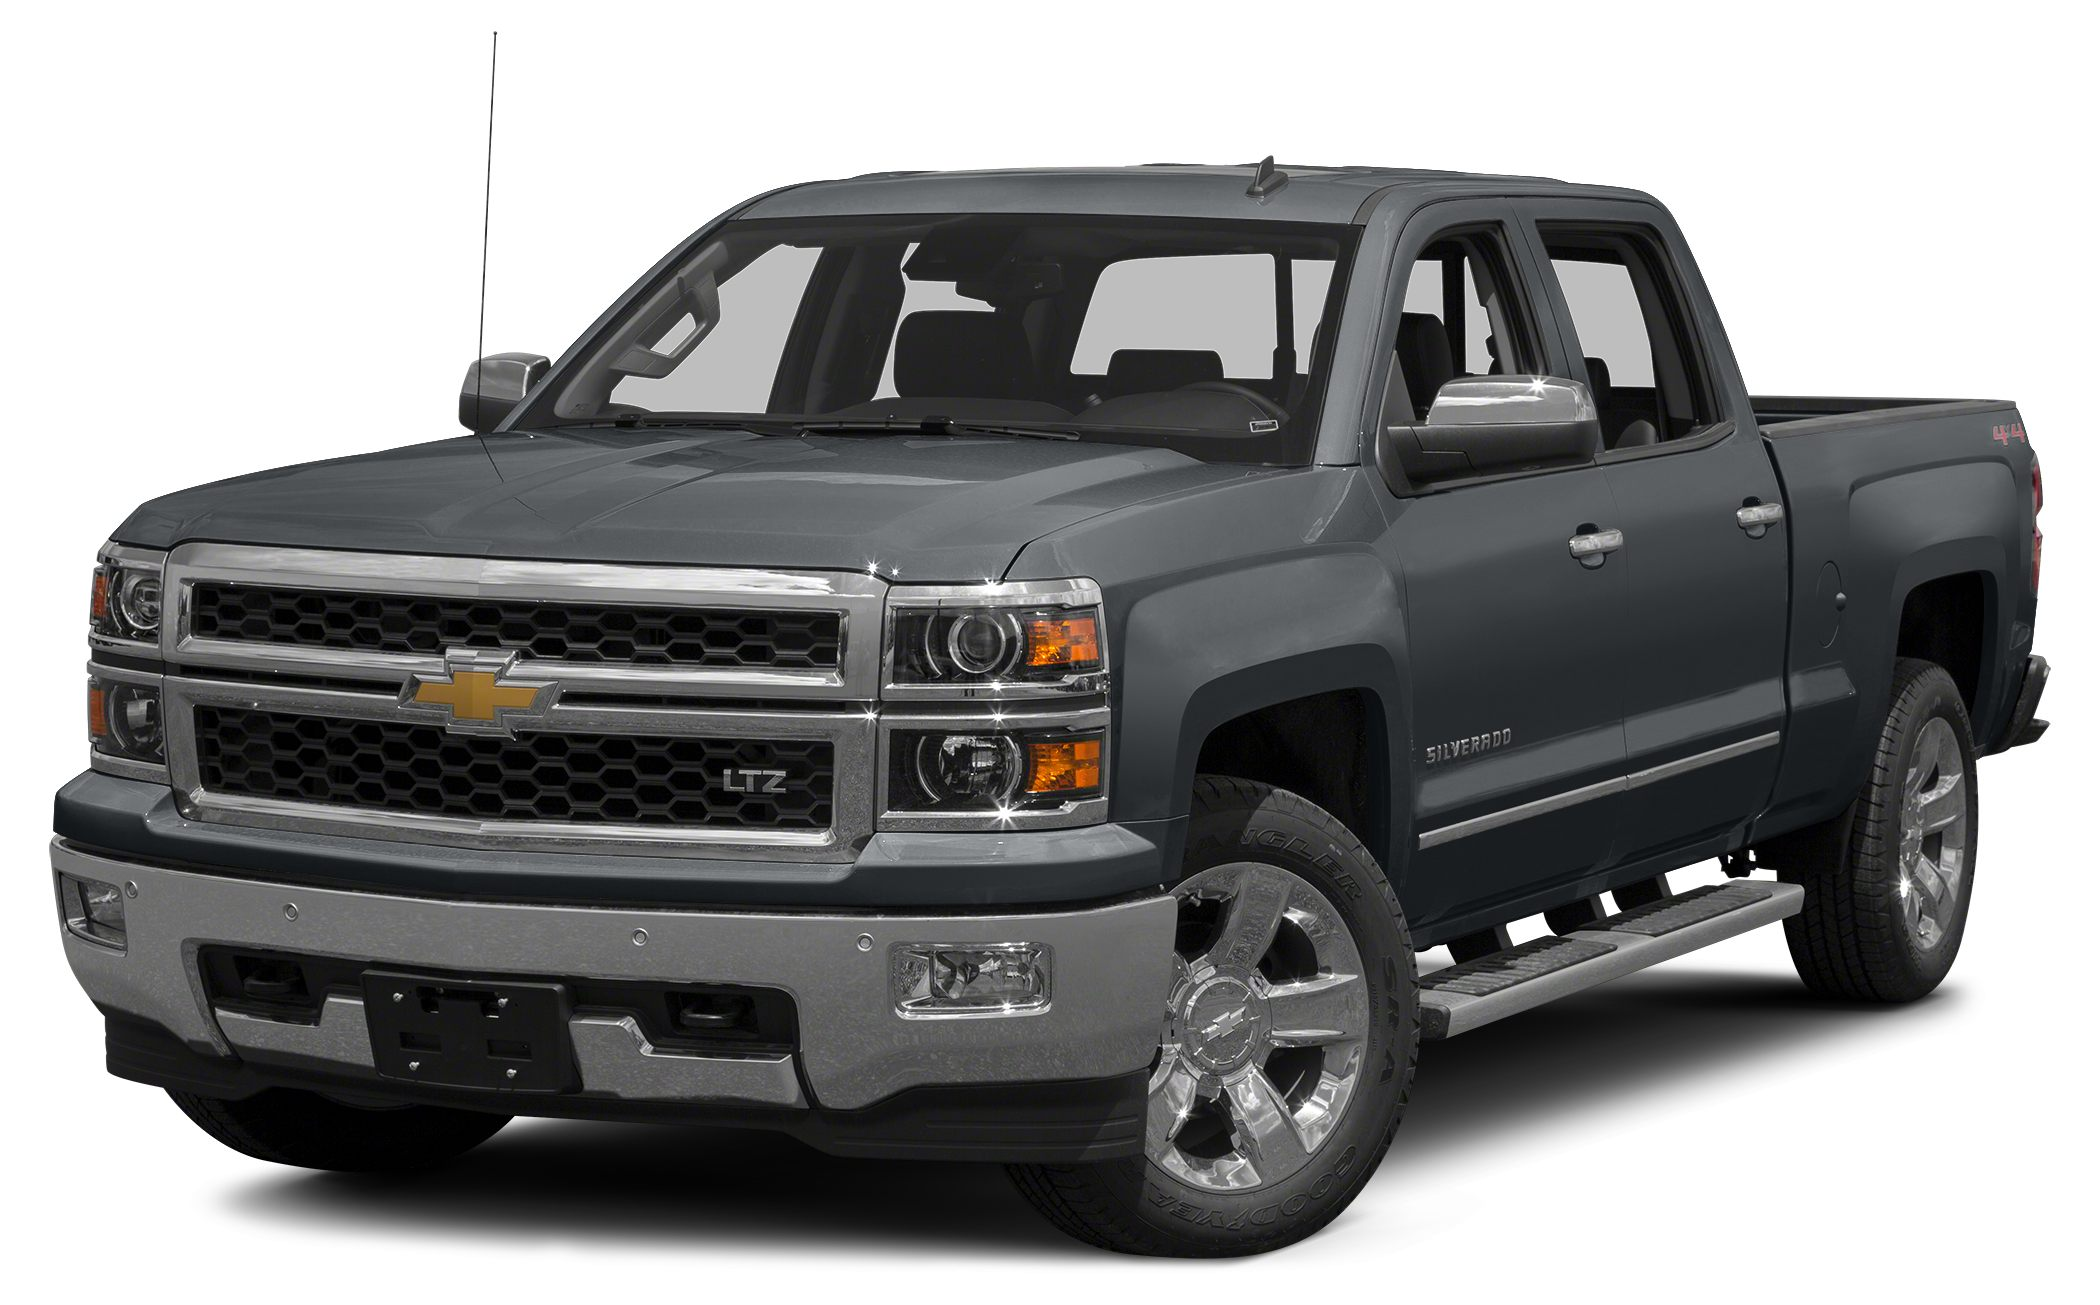 2014 Chevrolet Silverado 1500 LT w1LT EPA 23 MPG Hwy16 MPG City TRAILERING PACKAGE WHEELS 20